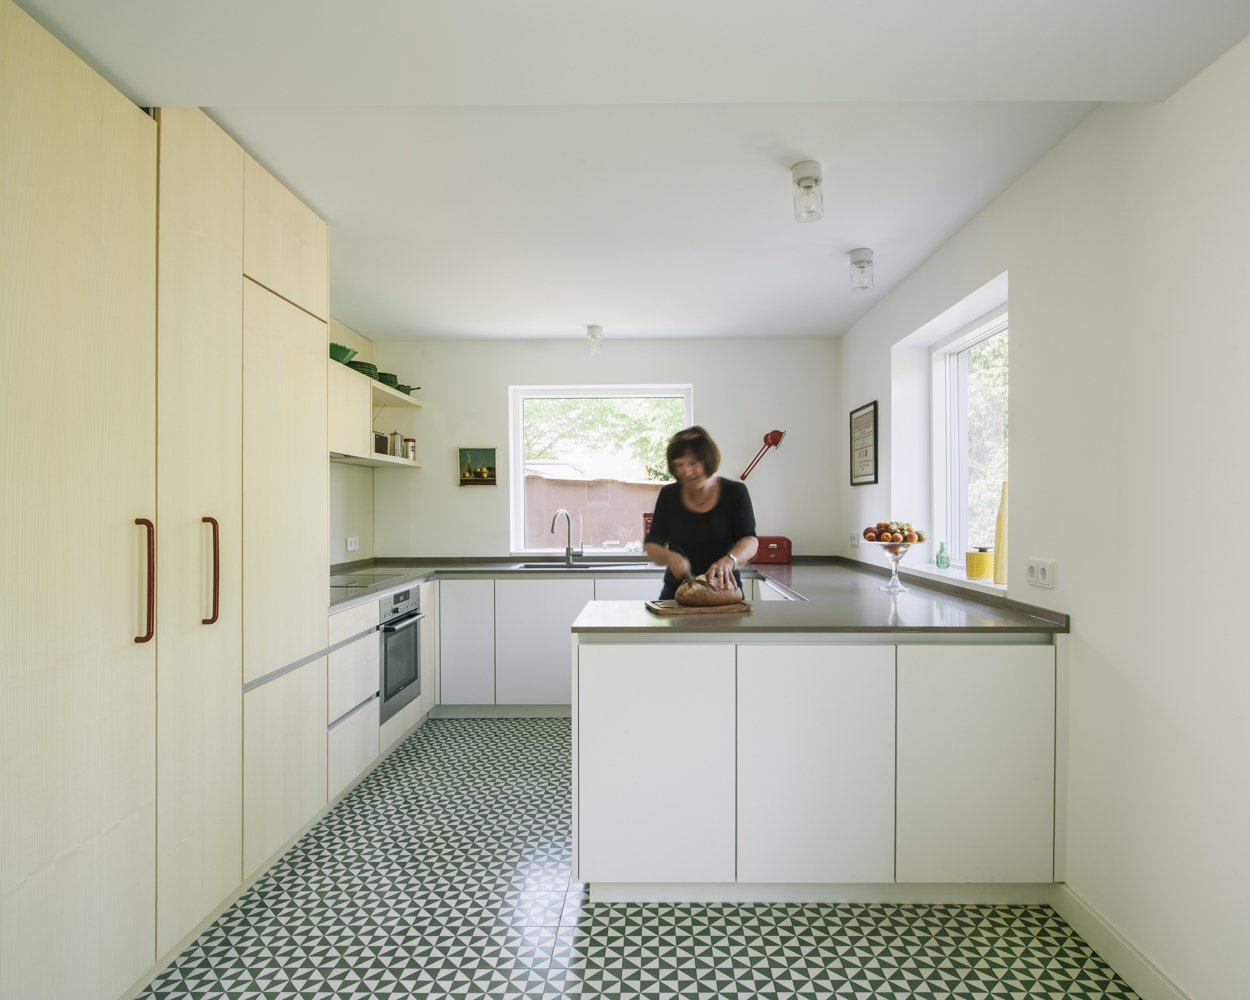 kitchen Tagged: Kitchen, Engineered Quartz Counter, Cement Tile Floor, White Cabinet, Wood Cabinet, Wood Backsplashe, Drop In Sink, and Ceiling Lighting.  Haus Mai by Project Architecture Company